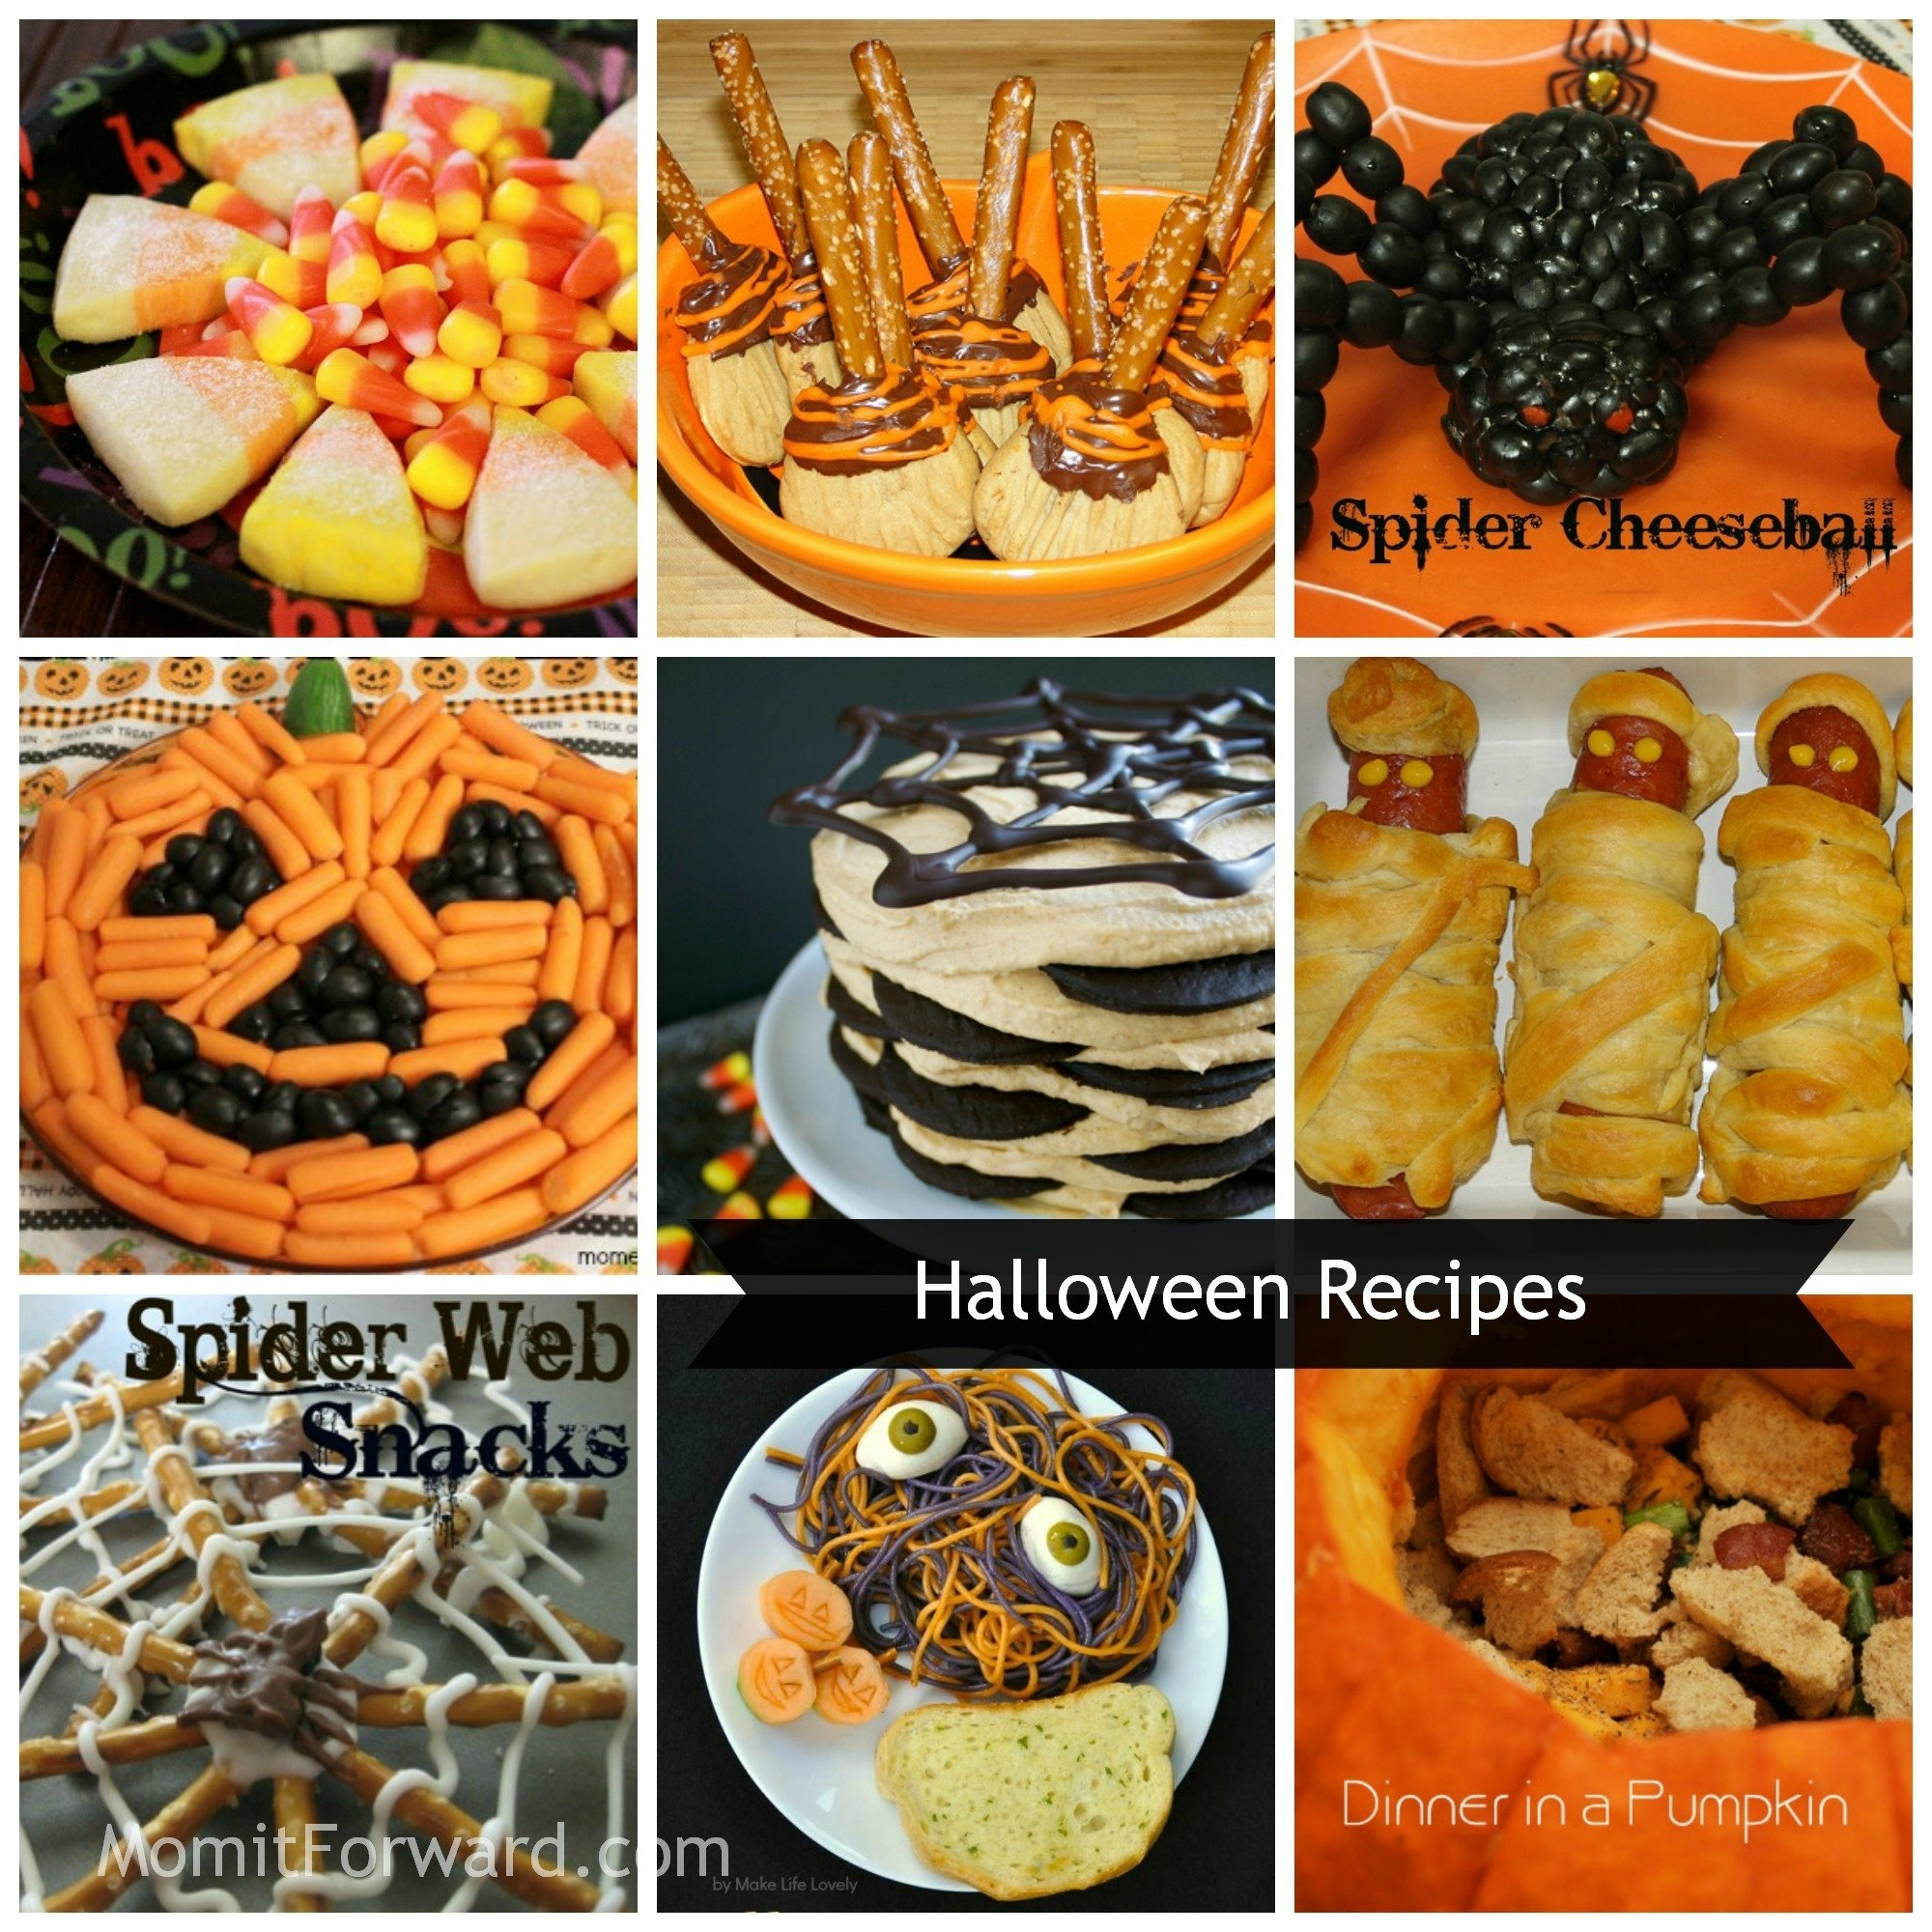 10 ideal halloween menu ideas for adults 10 ideal halloween menu ideas for adults halloween recipe dr odd idolza 2 forumfinder Image collections